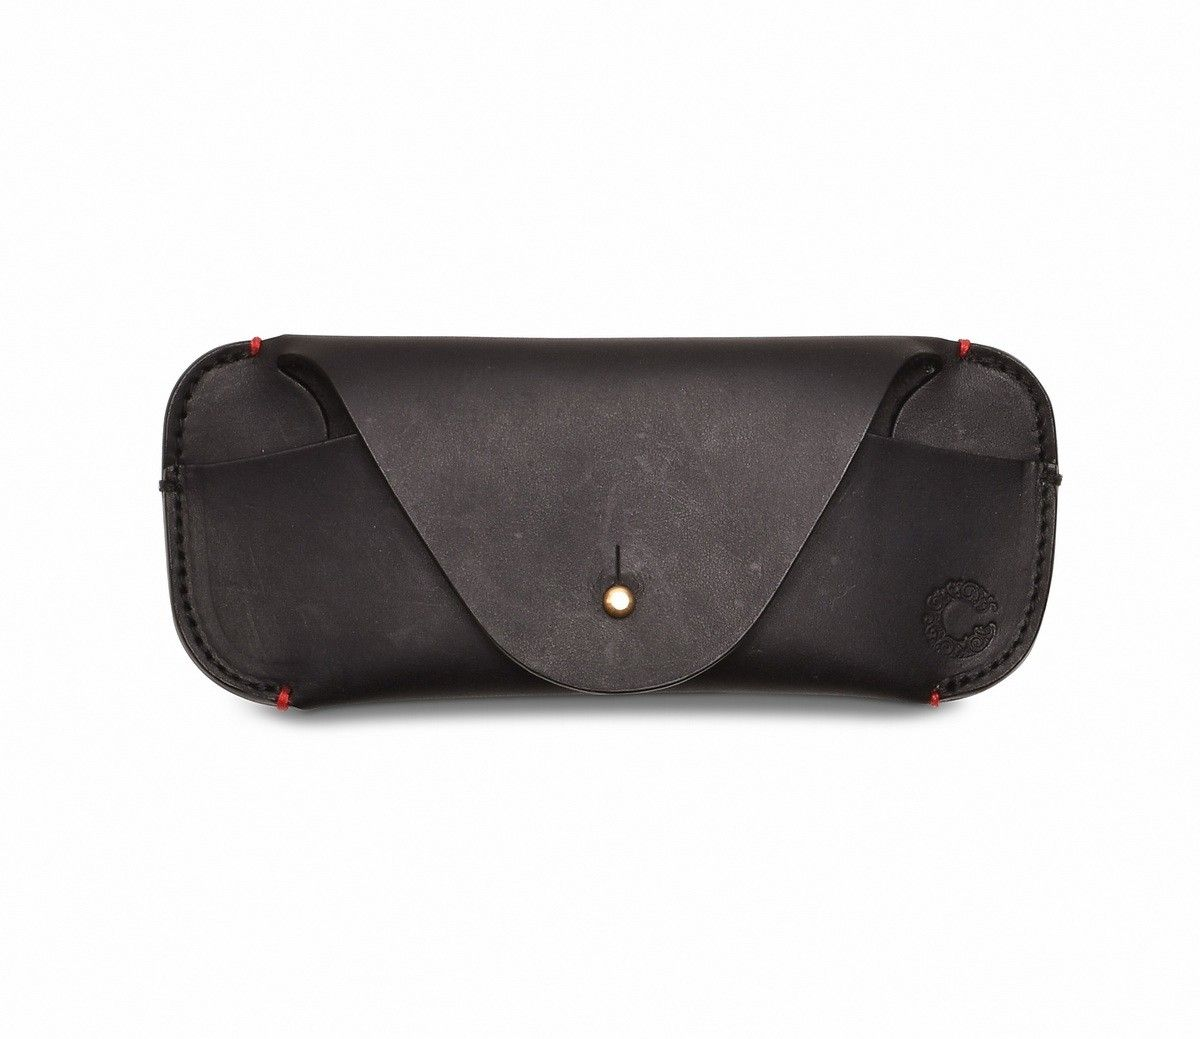 Croots - Leder Brillenetui - Vintage Leather Glasses Case - Black -